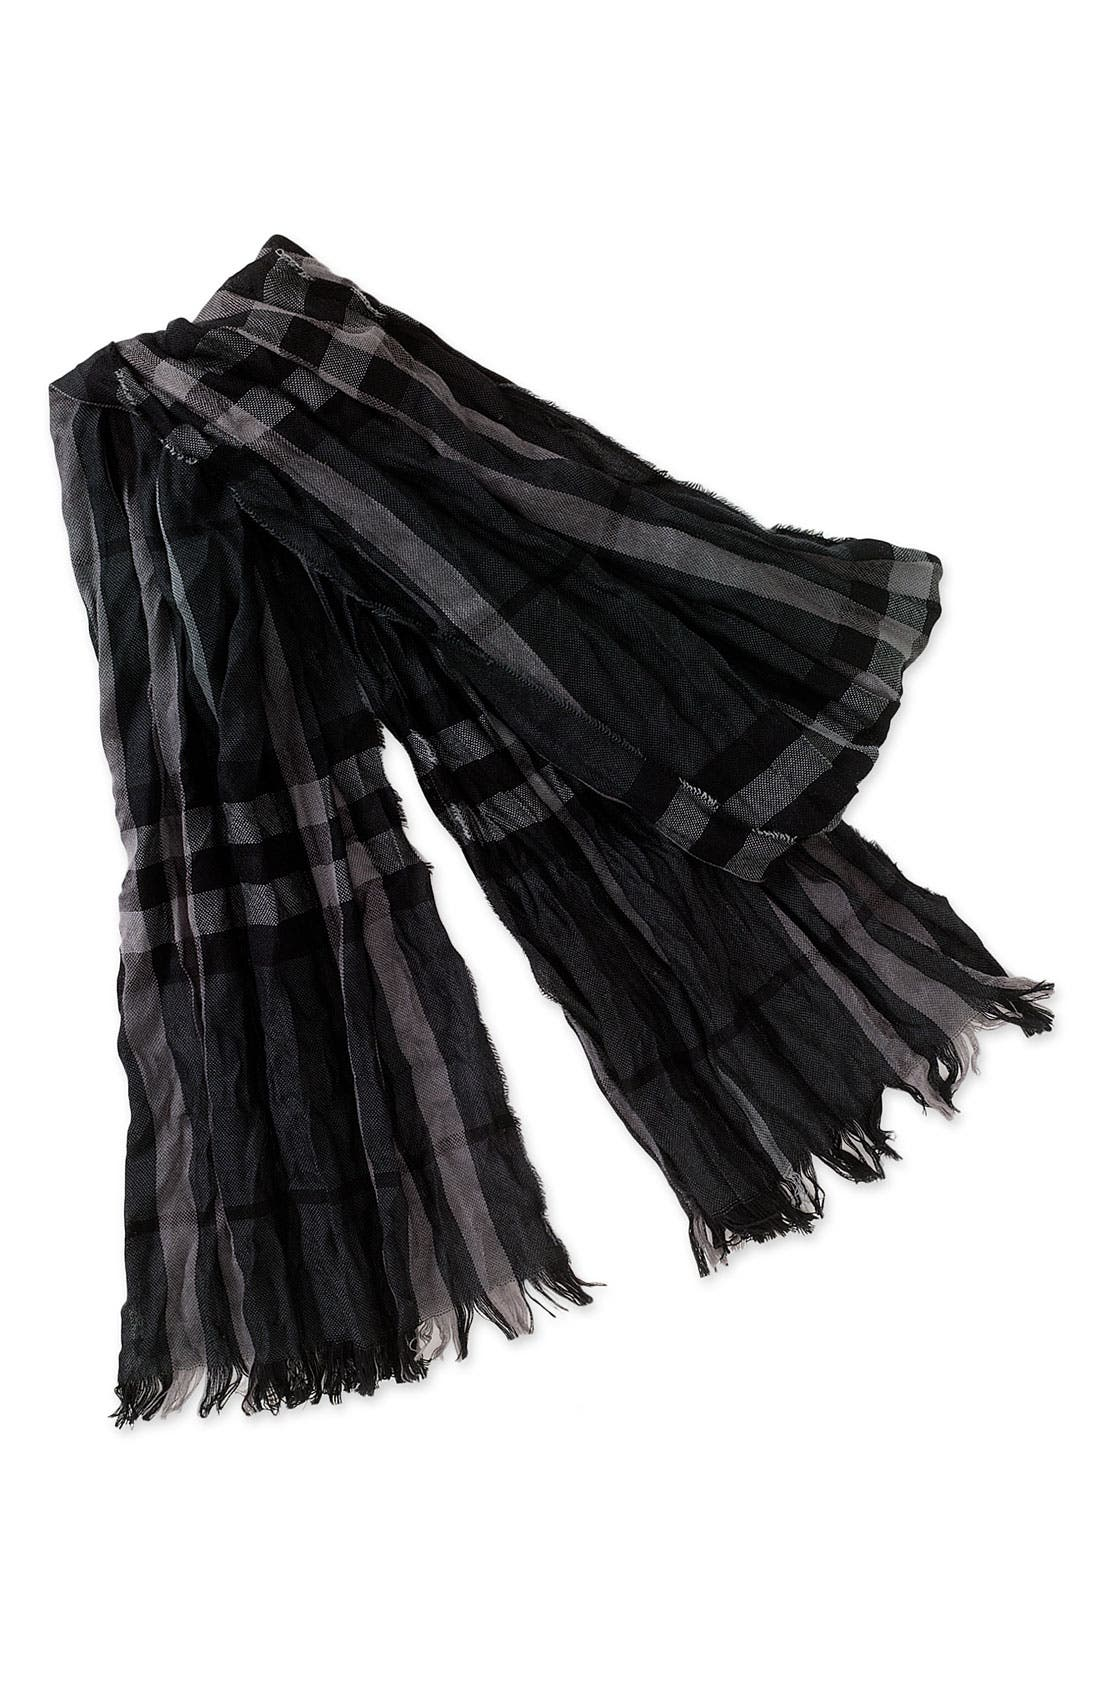 Alternate Image 1 Selected - Burberry Crinkled Merino Wool & Cashmere Scarf